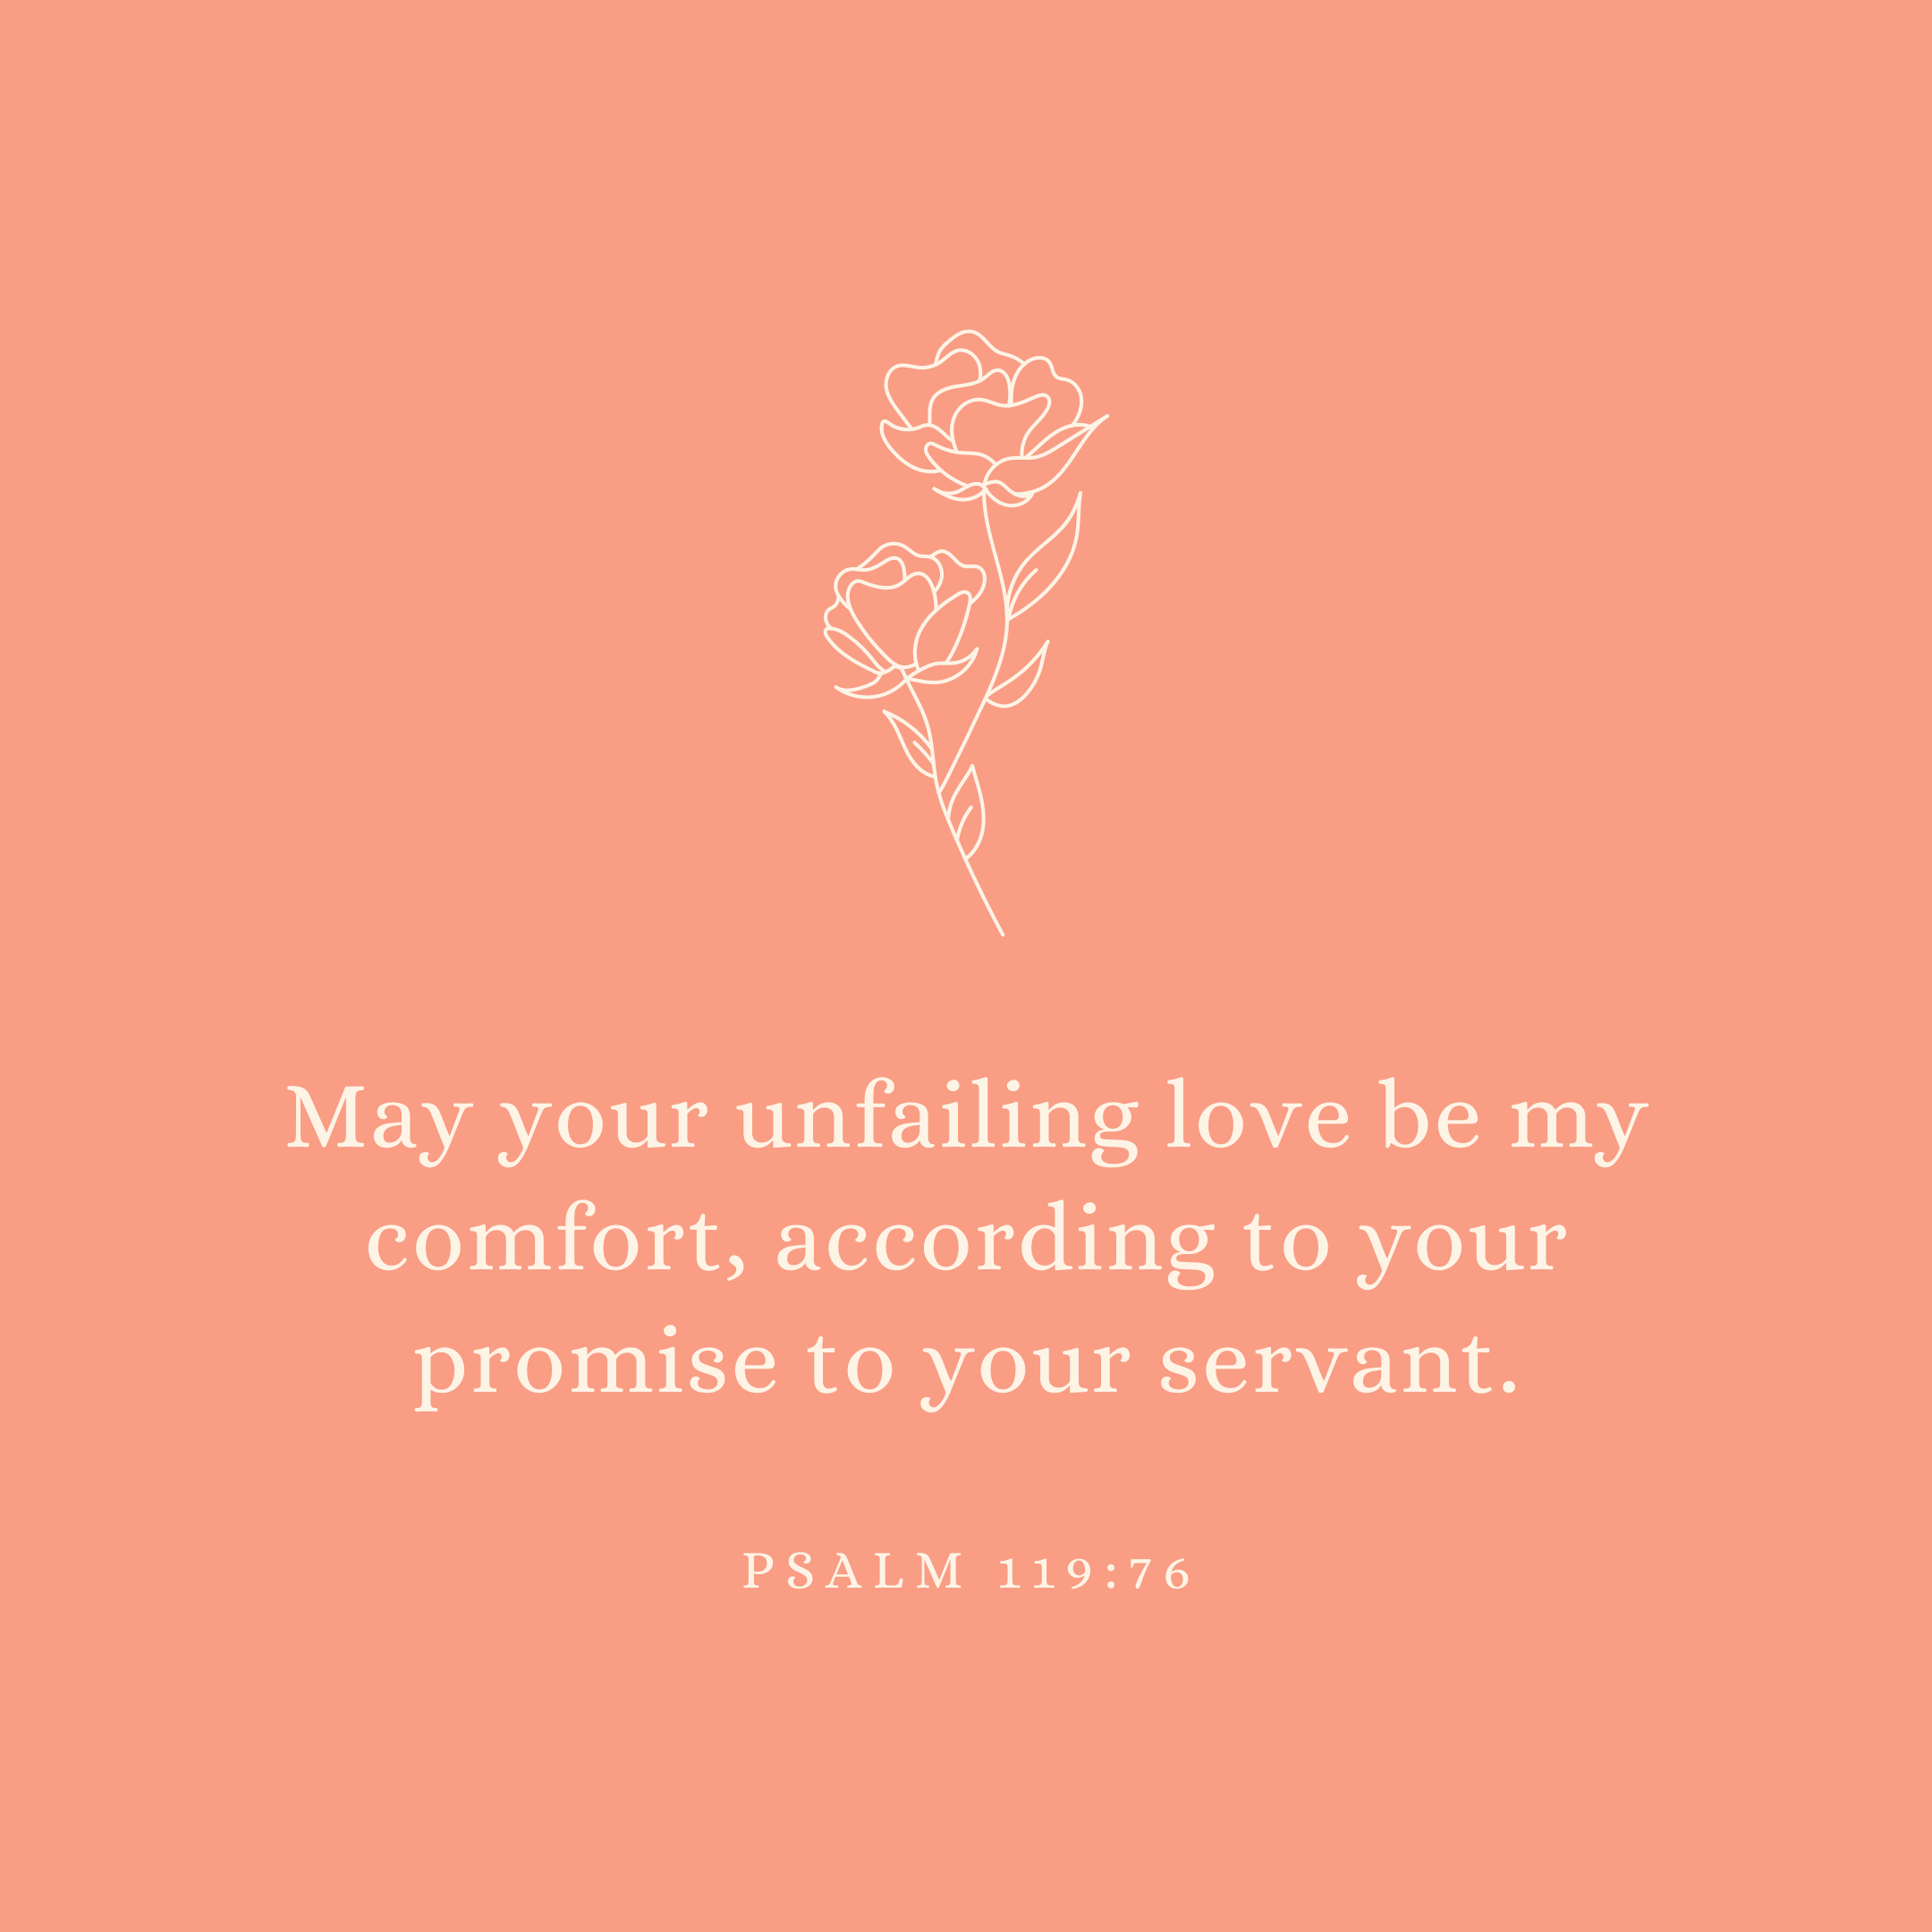 Psalm 119:76 May your unfailing love be my comfort, according to your promise to your servant.